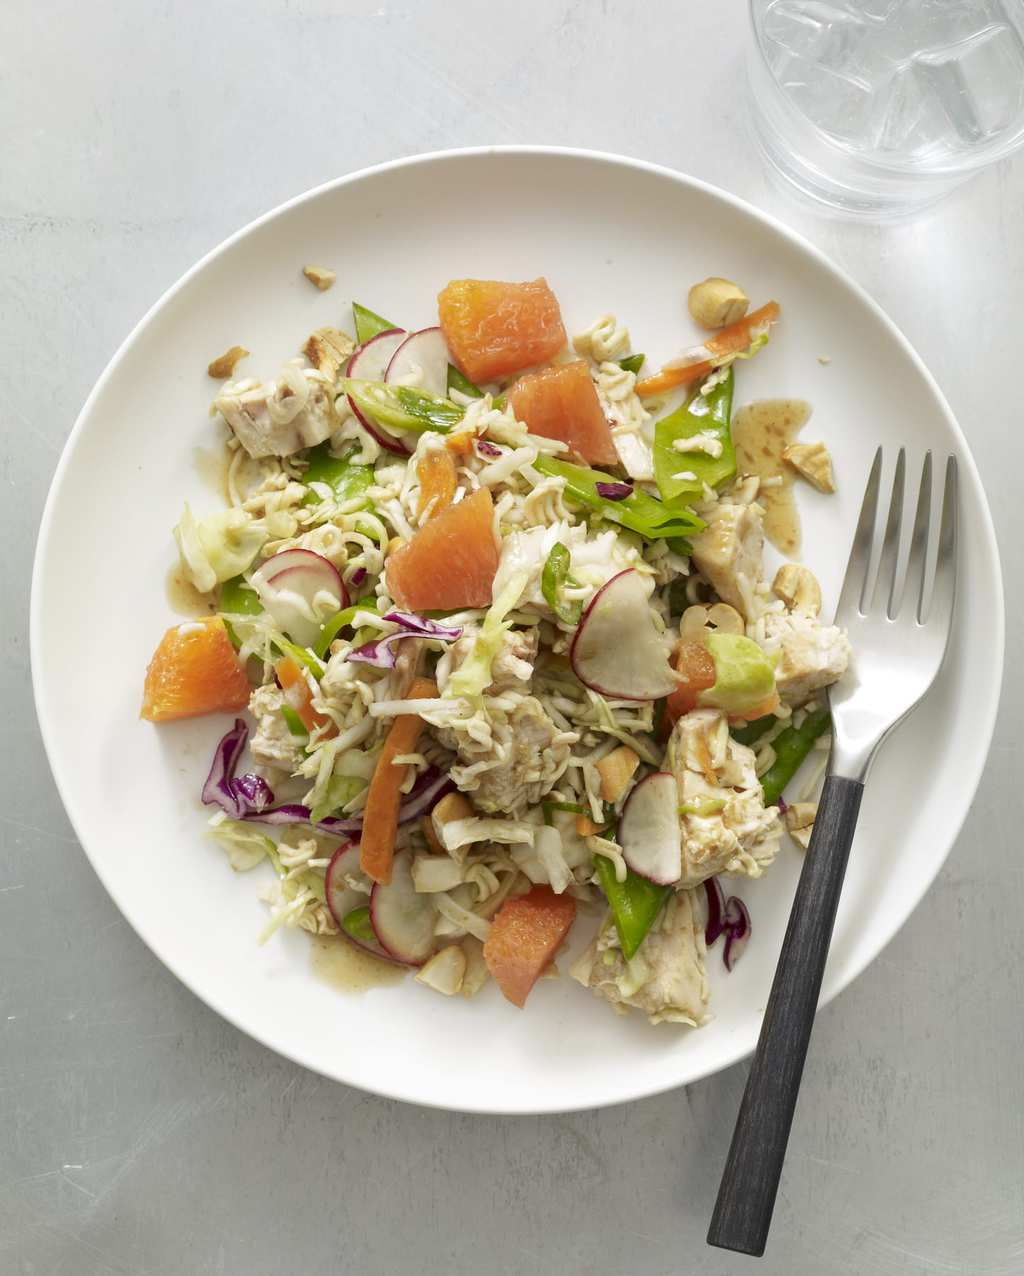 Crunchy Chicken Noodle Salad in white bowl with fork